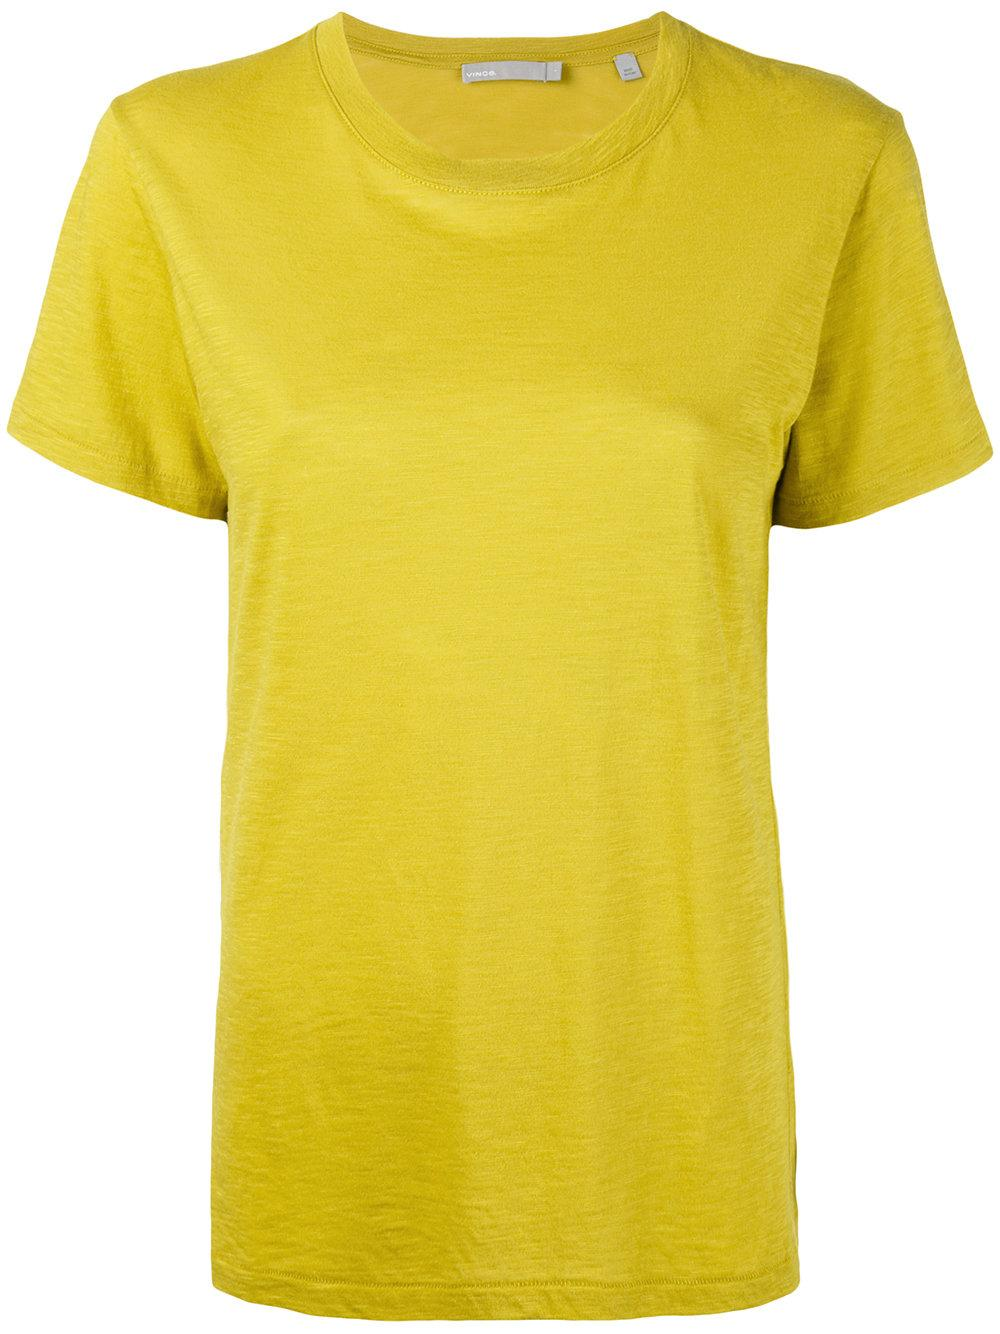 Lyst vince short sleeve t shirt in yellow for Vince tee shirts sale